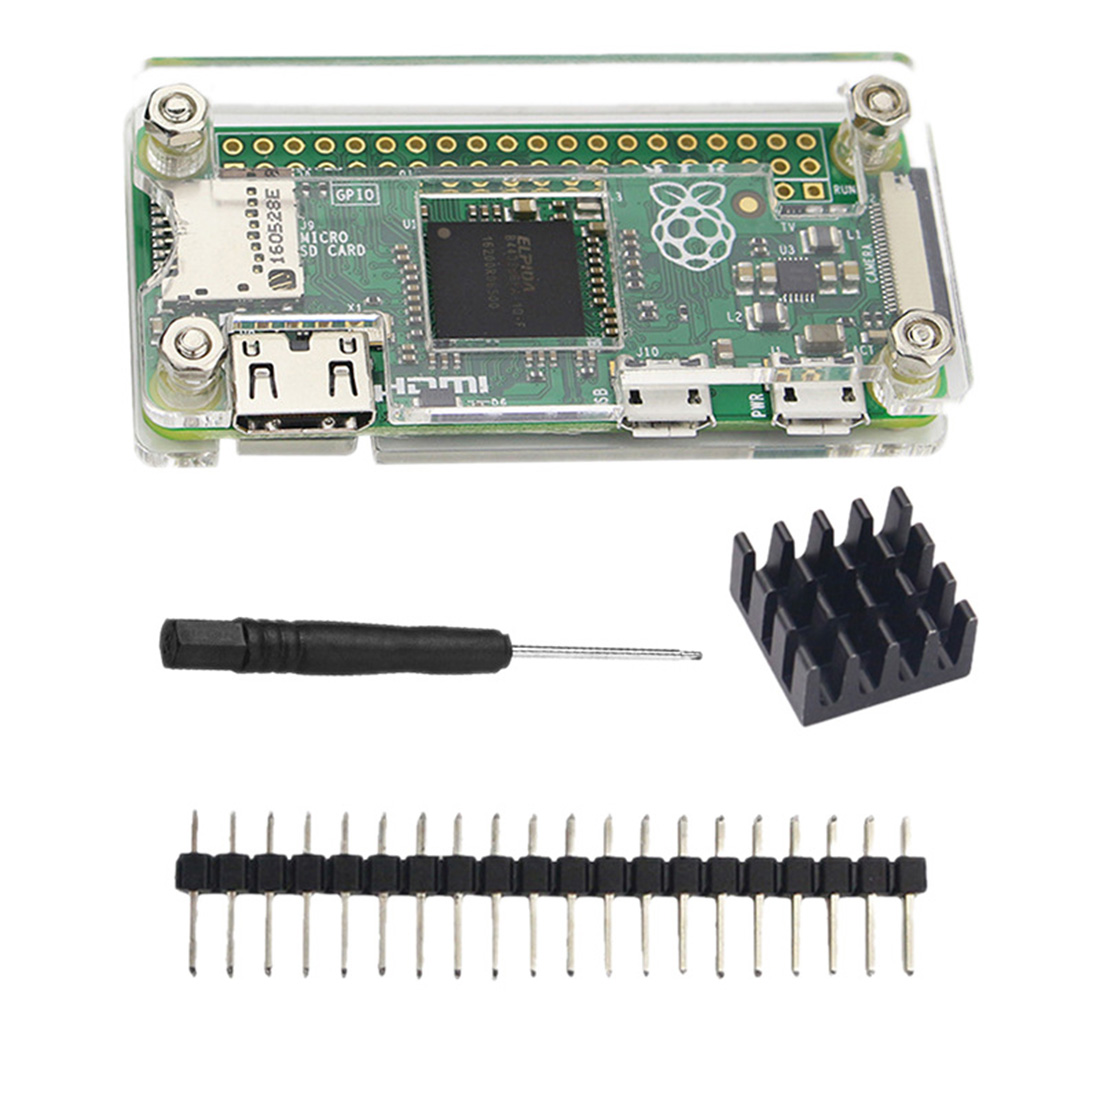 New Universal Acrylic Shell Kit With Cover/Cooling Fin/Screwdriver/40p Double Row Pin Set For Raspberry Pi Zero 1.3/Zero W